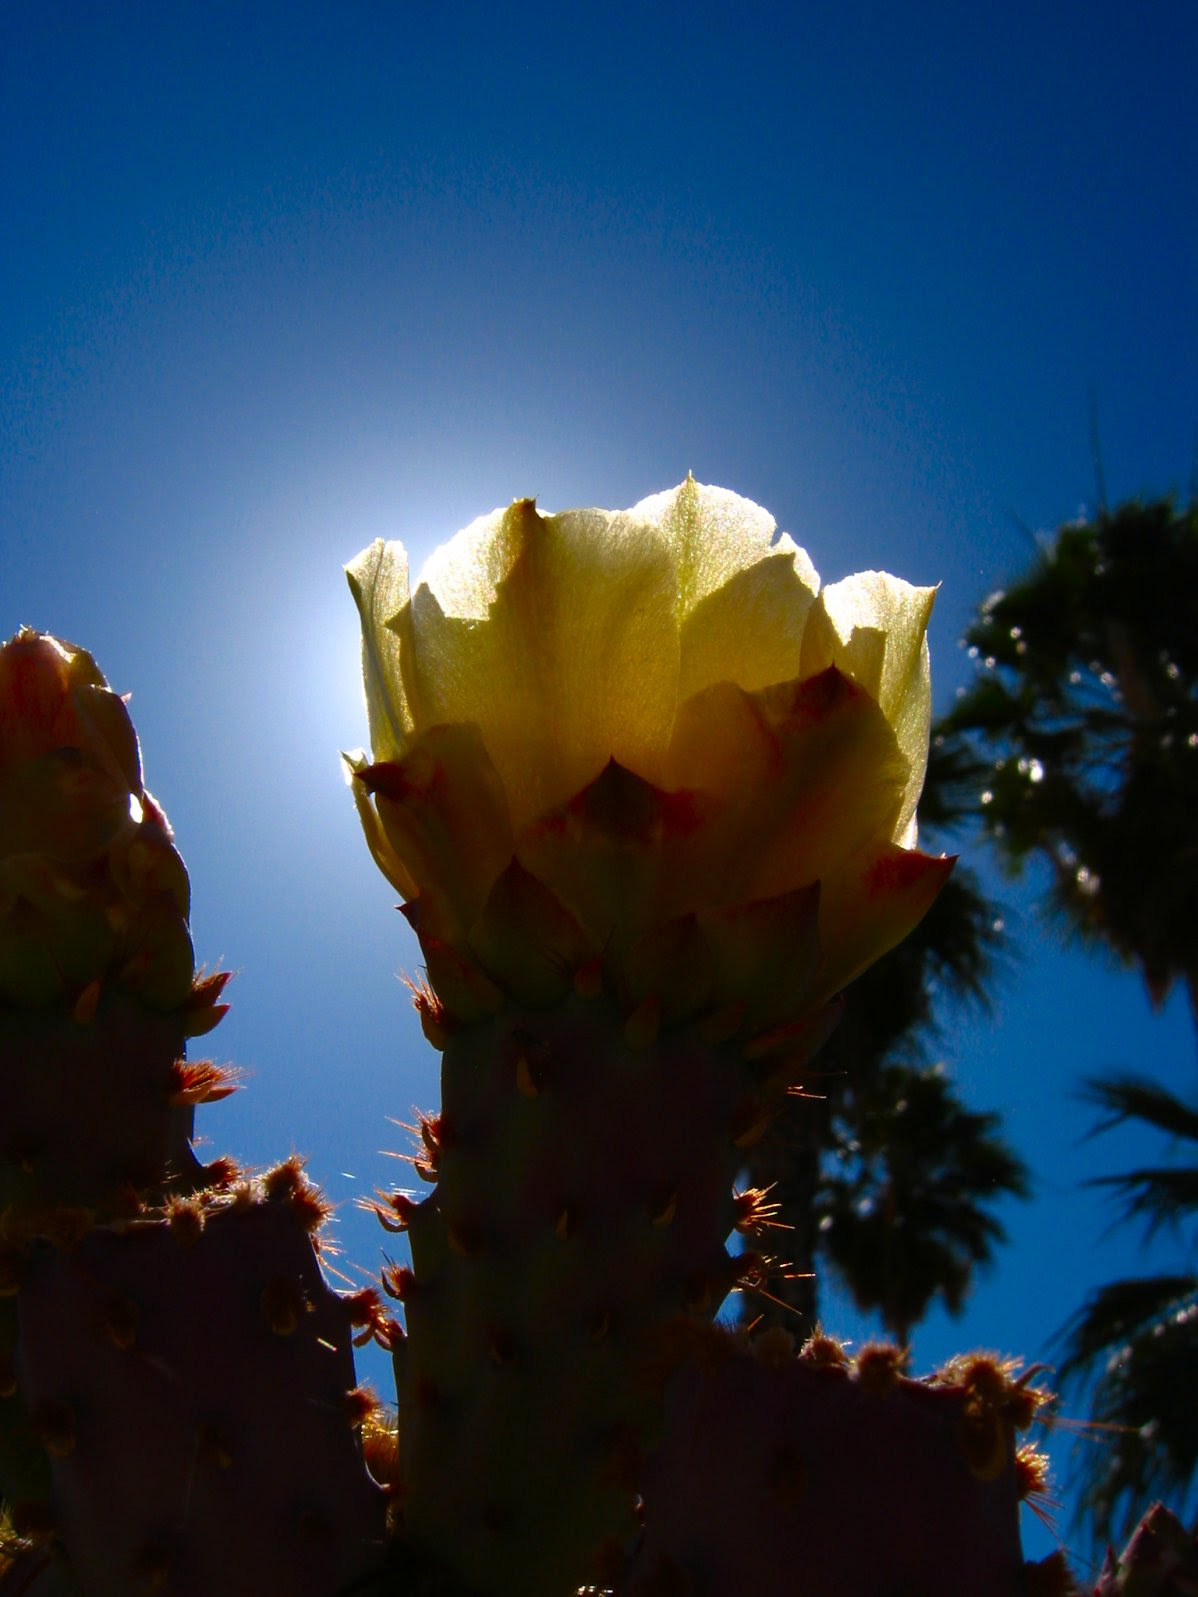 Pear Cactus Flower backlit by Sun. Photo - soul-amp.com